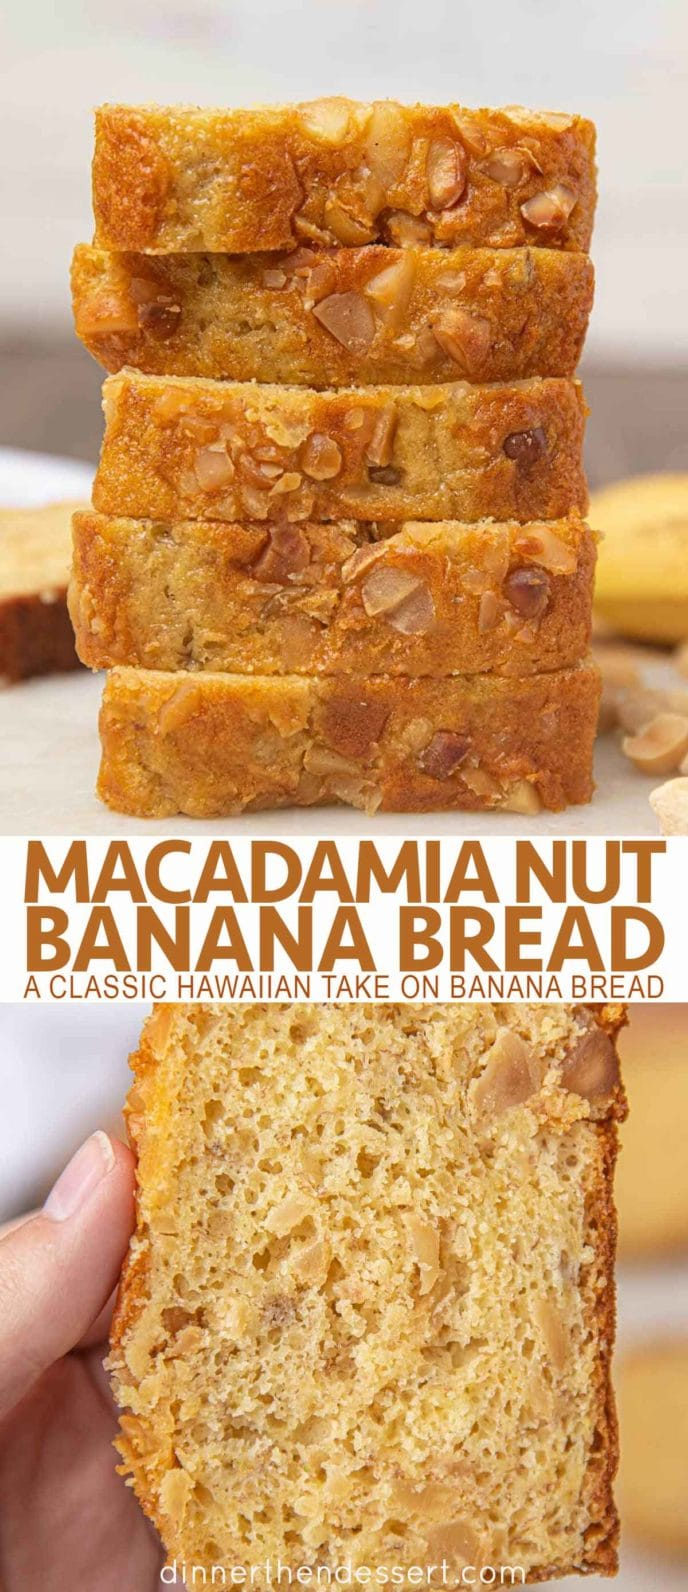 Slices of Macadamia Nut Bread